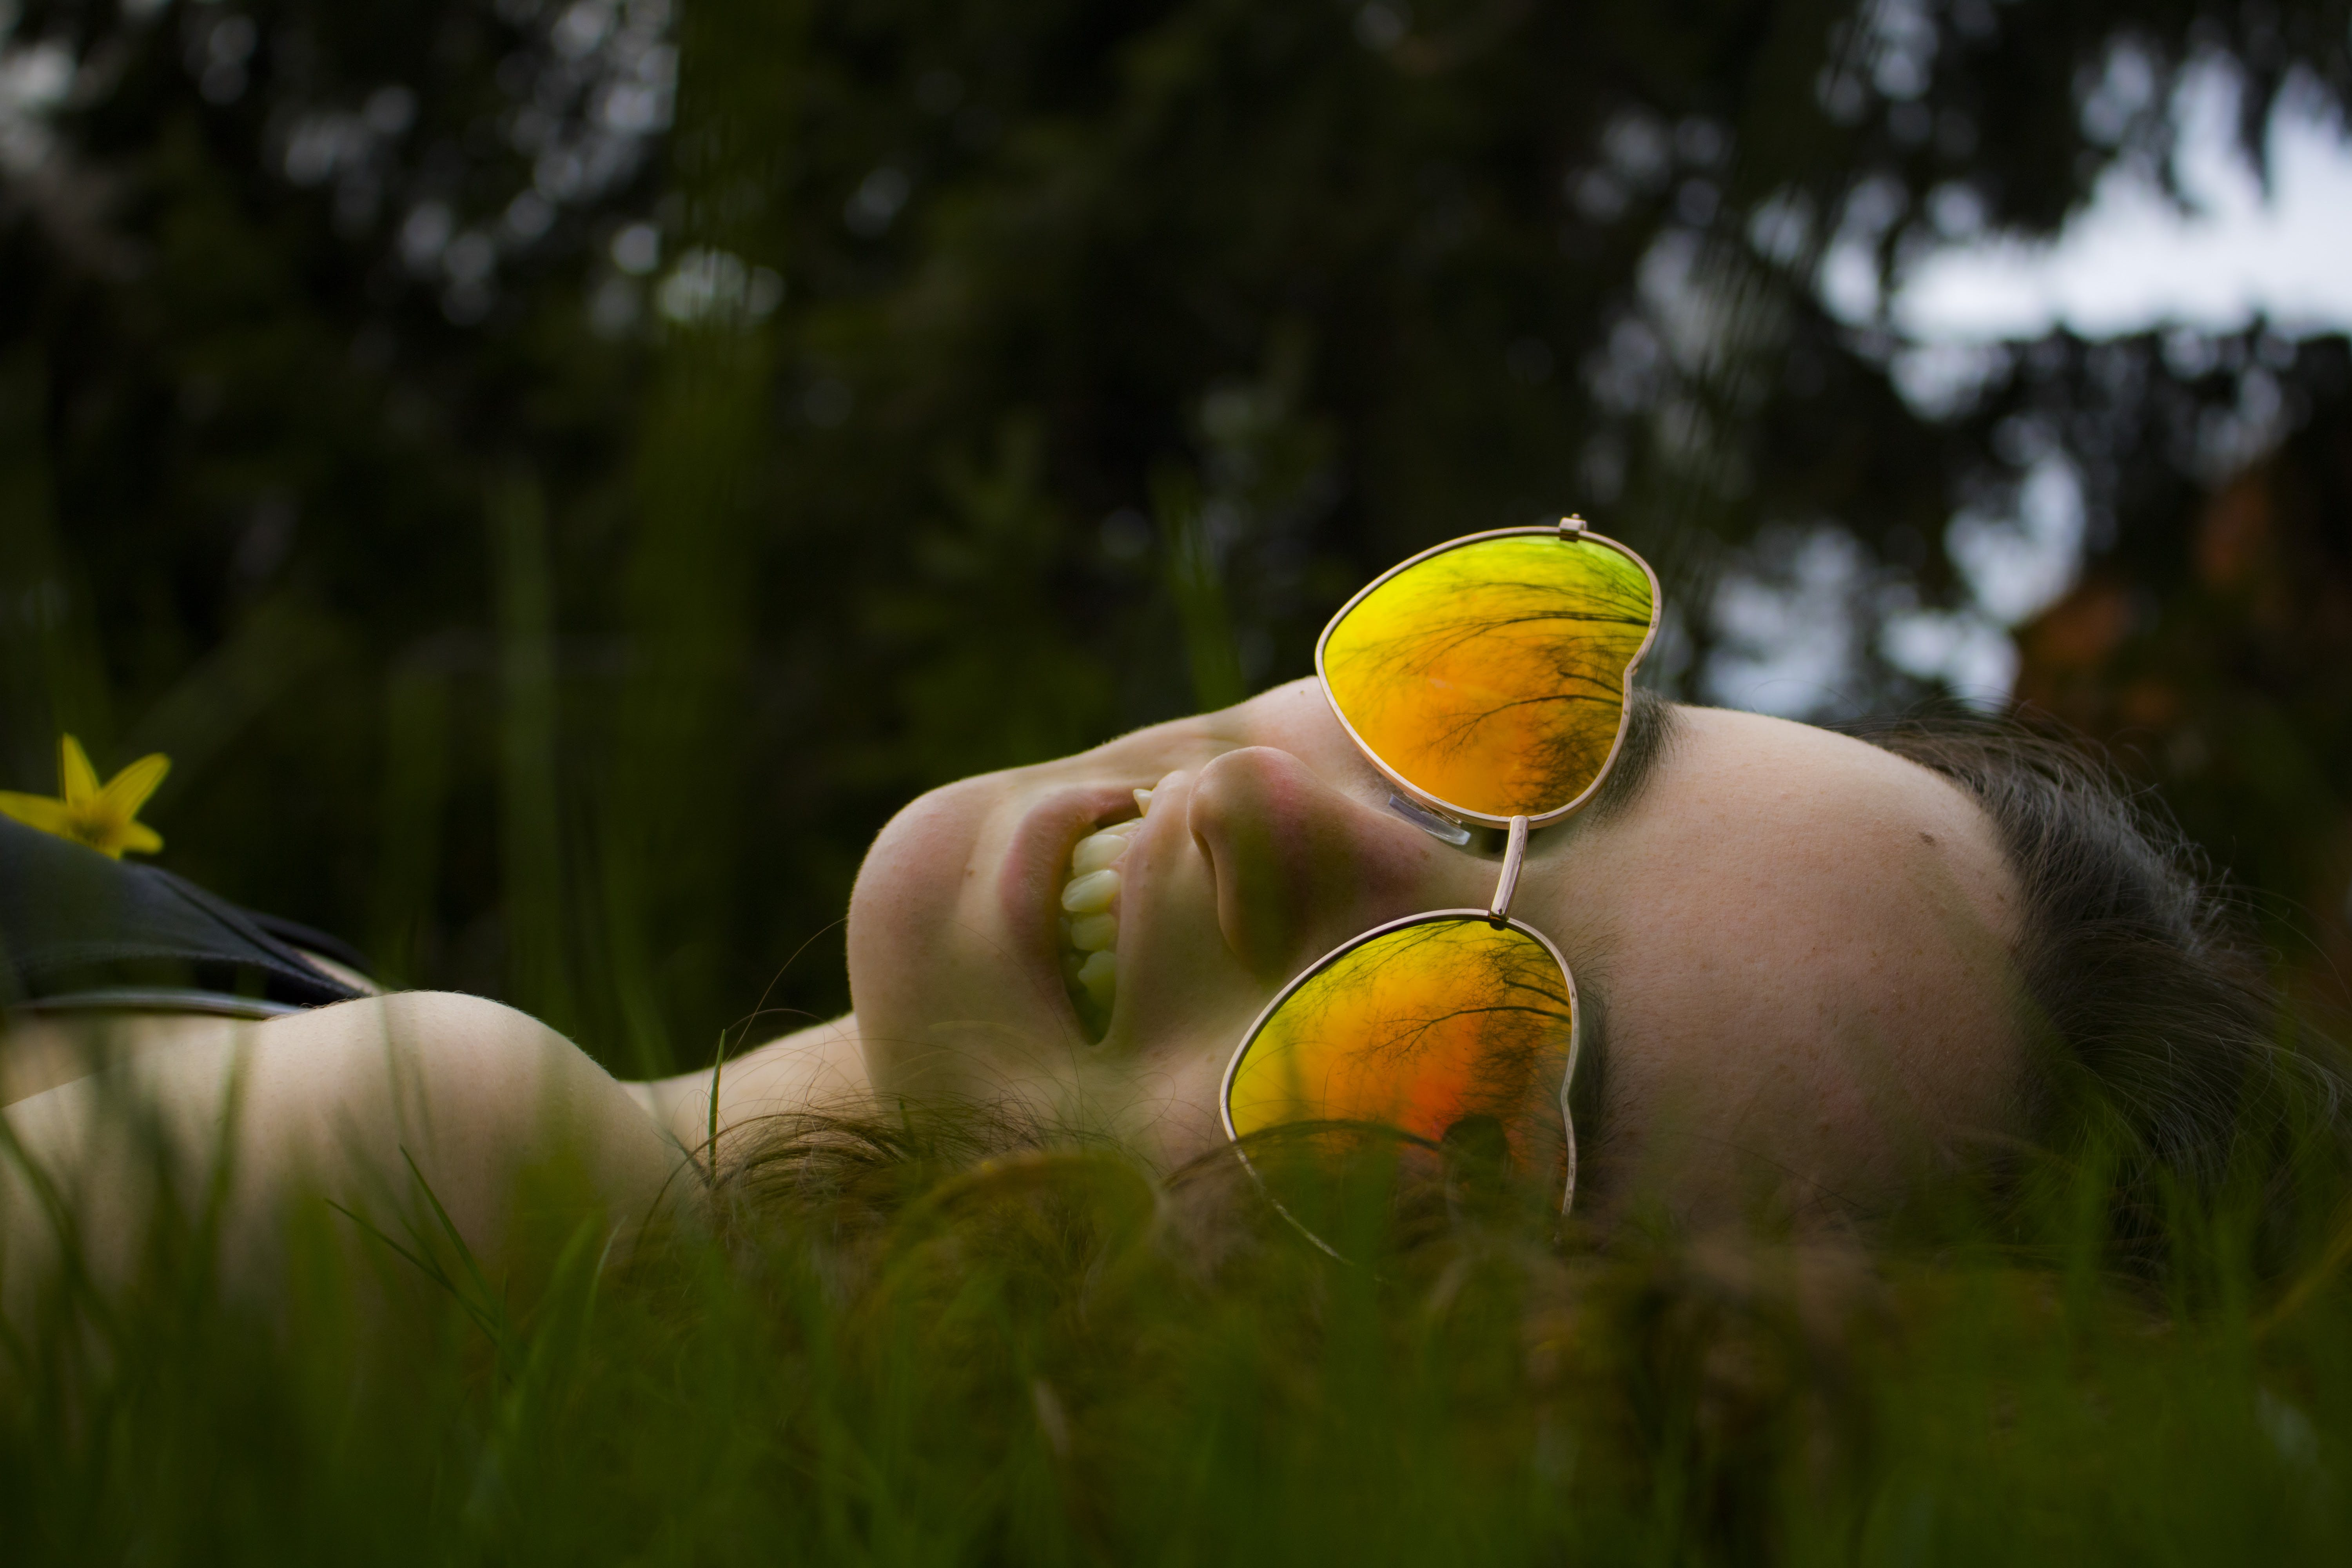 Lying Woman on Green Grasses With Gold-colored Sunglasses Closeup Photo